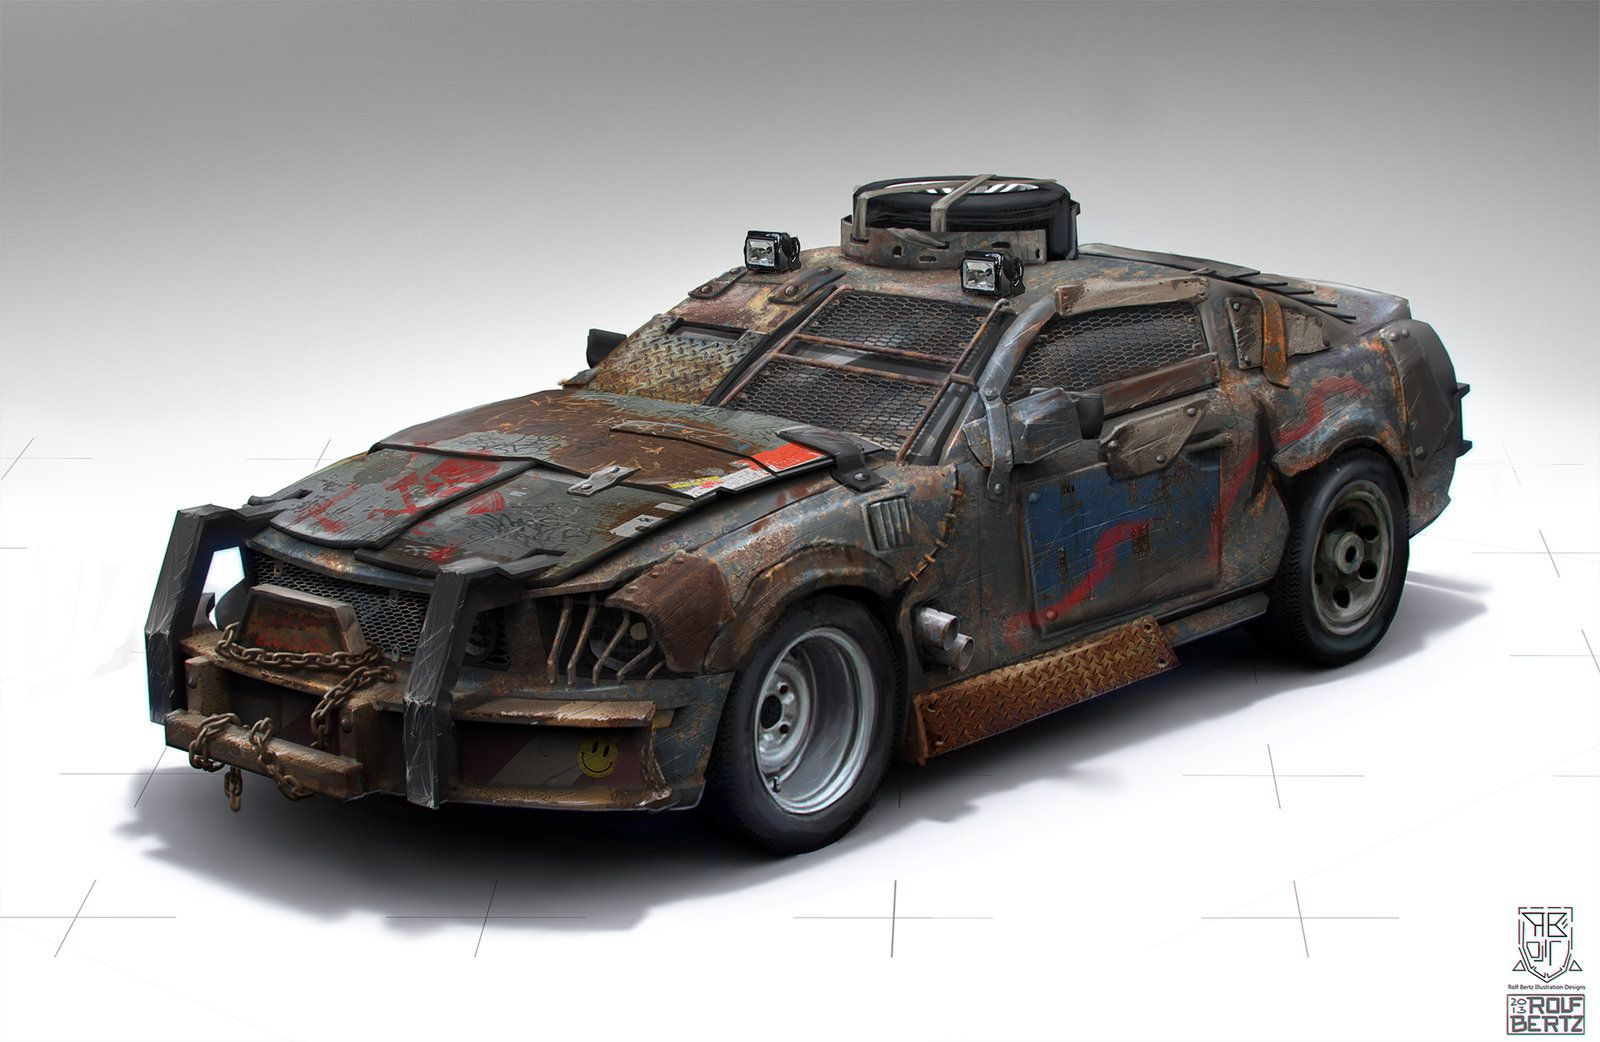 Wasteland Car Rolf Bertz On Artstation At Https Www Artstation